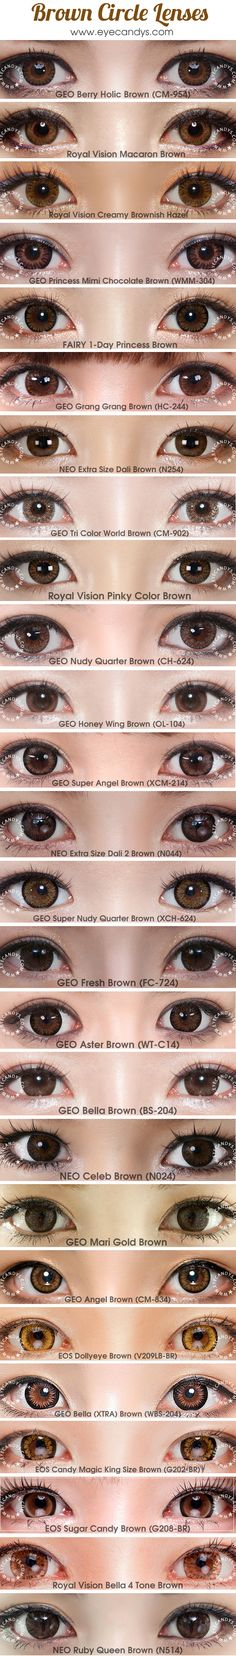 Brown, honey, hazel, chocolate circle lenses (colored contact lens). Authentic Korean circle lenses, circle lens, colored contacts, color contact lens, big eyes, cosmetic contact lenses. Buy authentic GEO lens with free Shipping to USA, Canada & worldwide! http://www.eyecandys.com/brown/